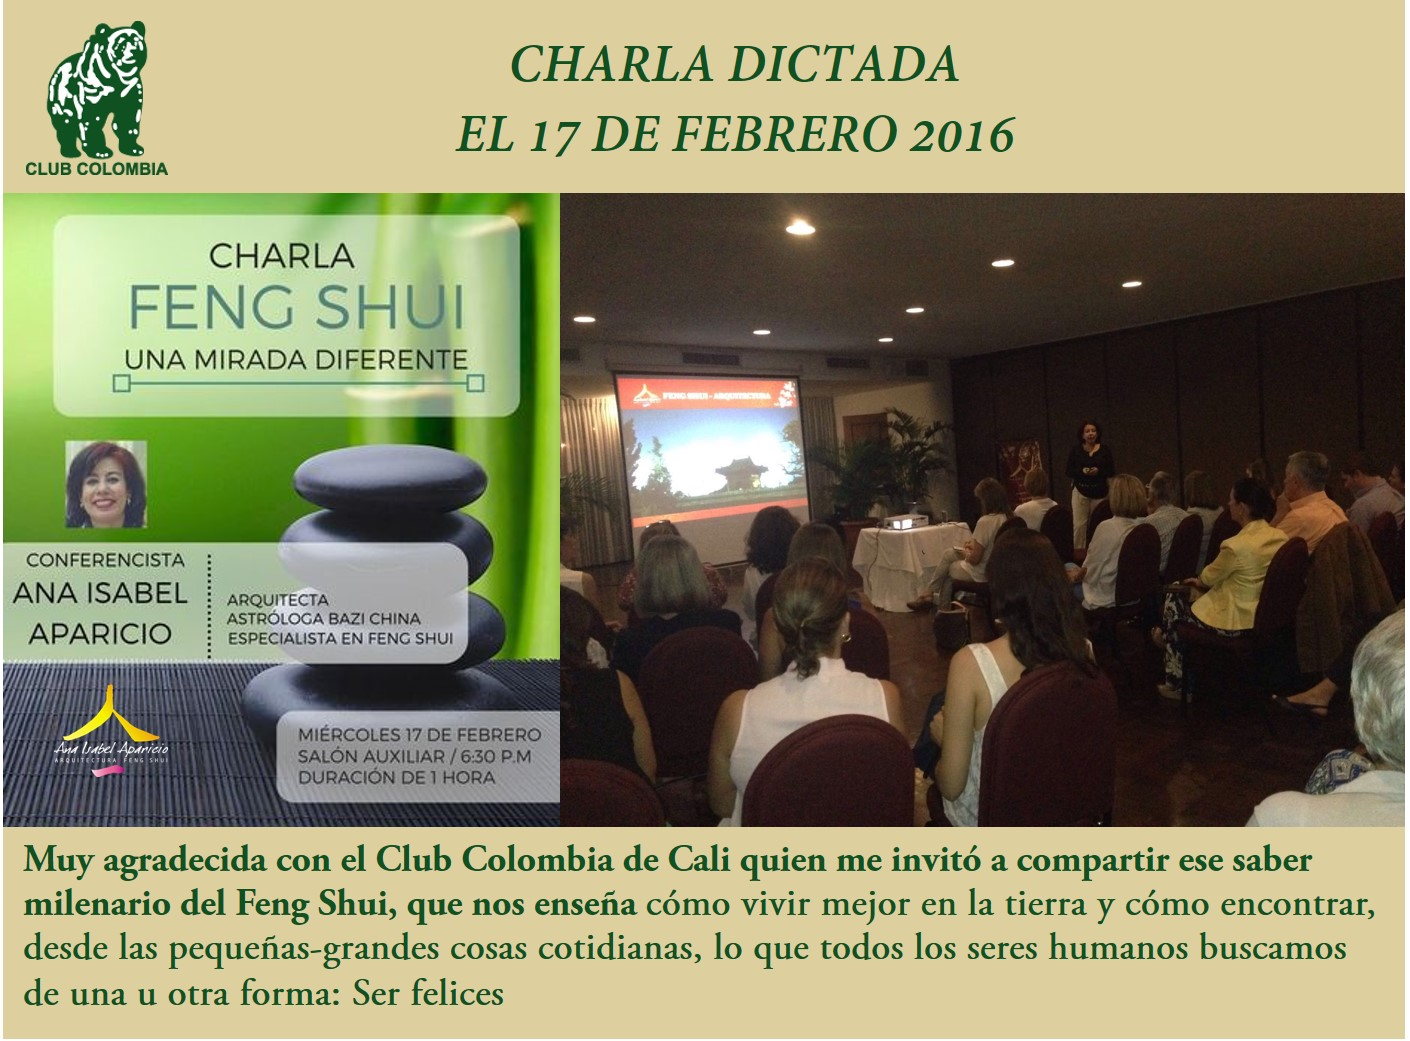 charla dictada Feng Shui club colombia